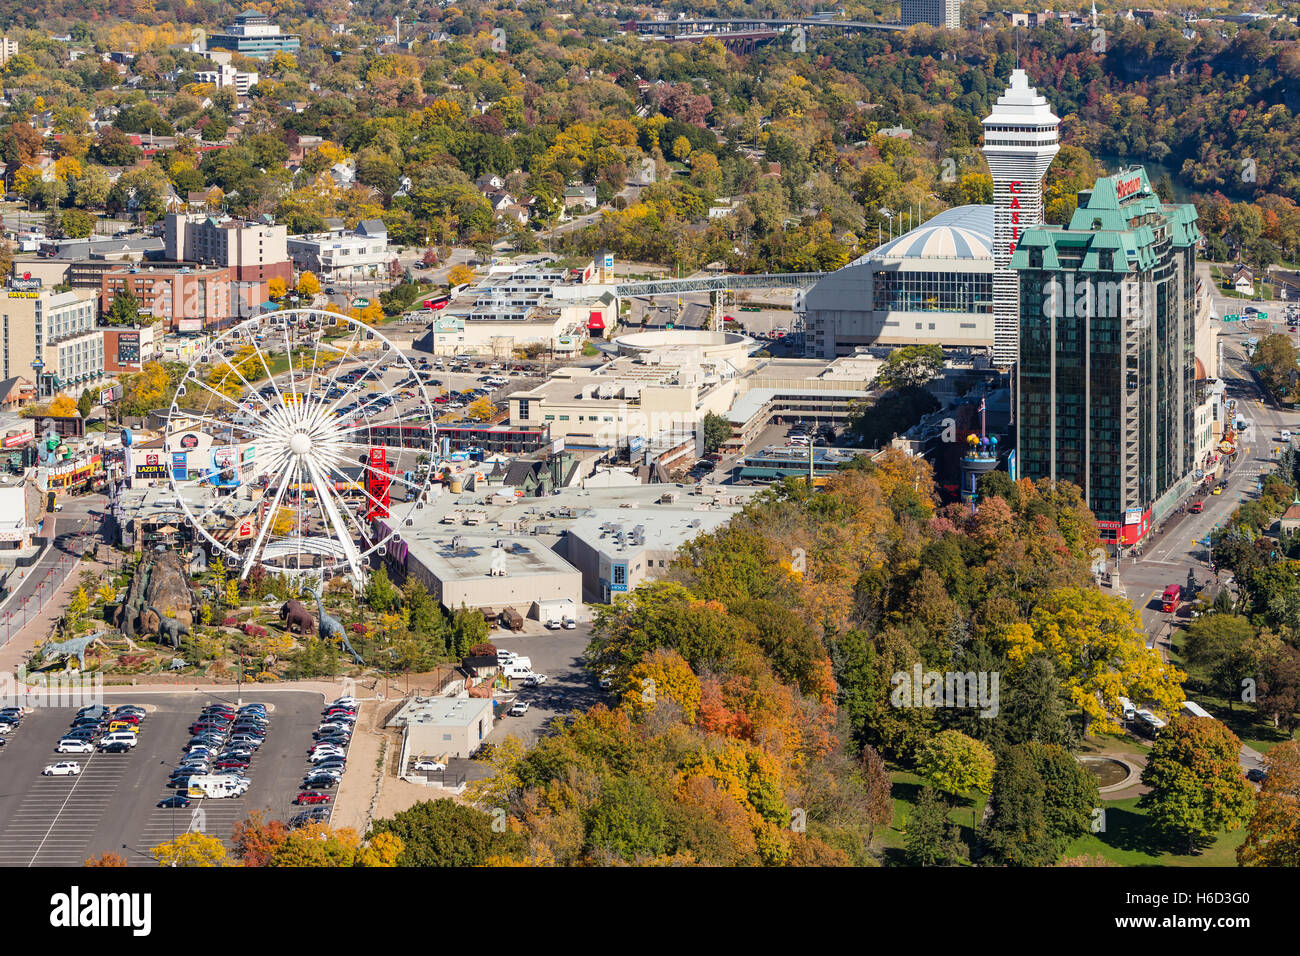 Aerial view of the Clifton Hill district of Niagara Falls, Ontario, Canada. - Stock Image